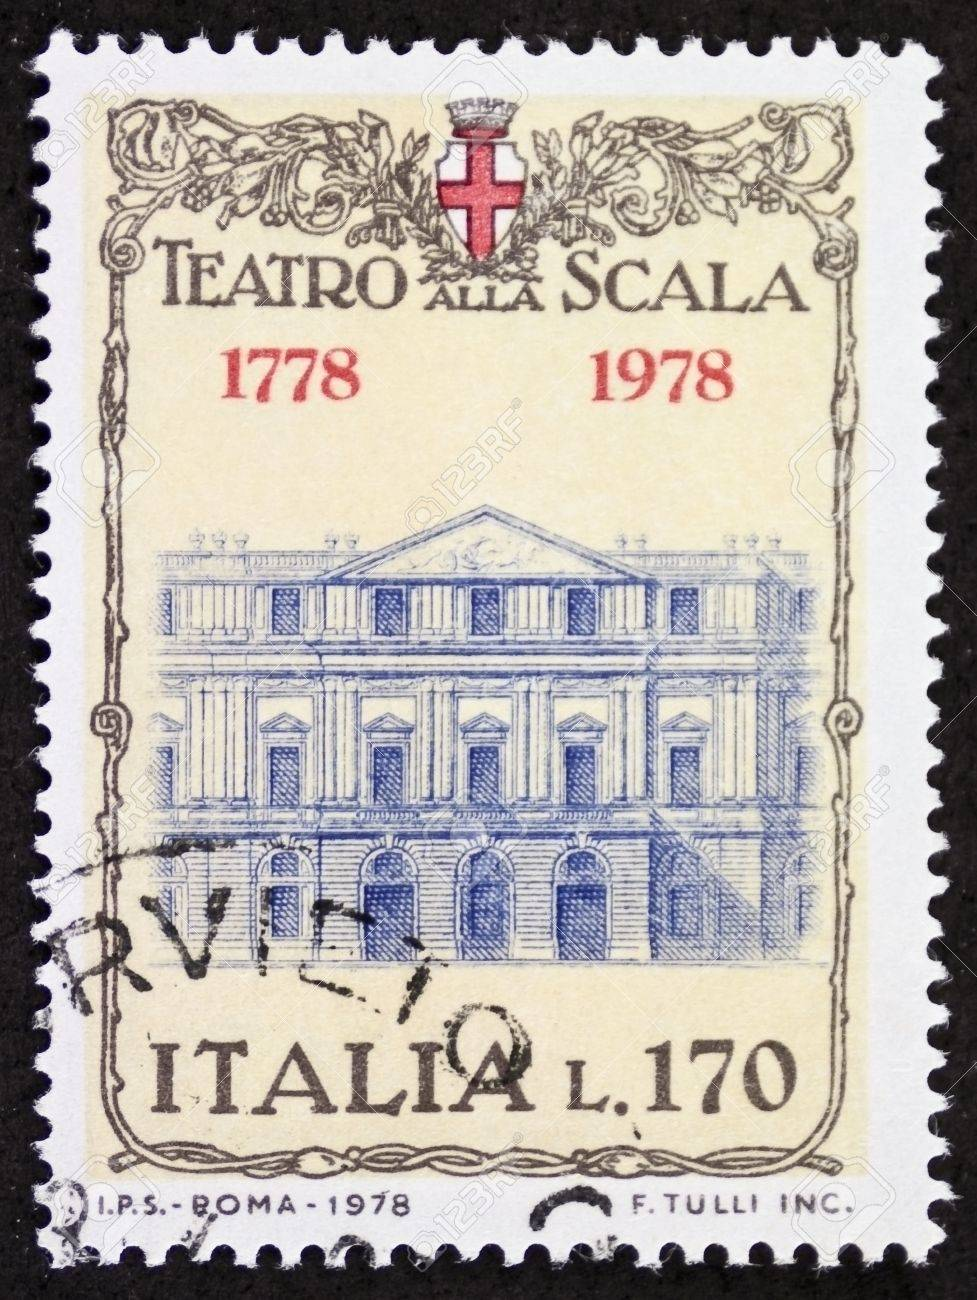 ITALY CIRCA 1978: a stamp printed in Italy shows illustration of  La Scala theatre facade, famous opera house in Milan. Italy, circa 1978 Stock Photo - 22059090